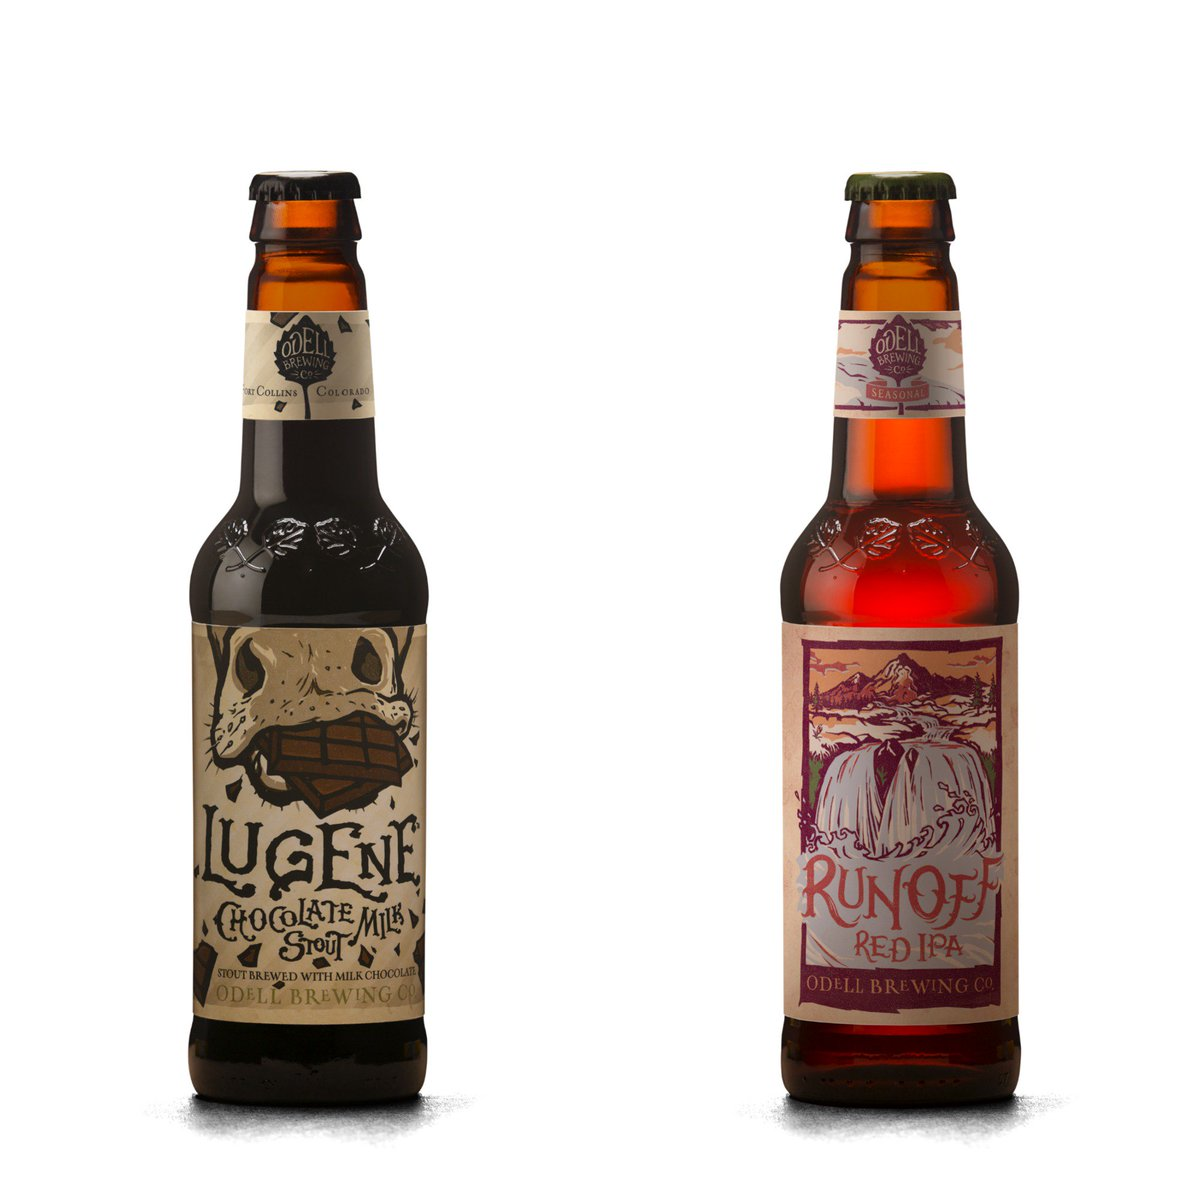 Re-tweet if you're excited for our new seasonal releases! #RunofRedIPA #Lugene #WolfPicker https://t.co/KBd8uAnPyP https://t.co/nTkQihENjA